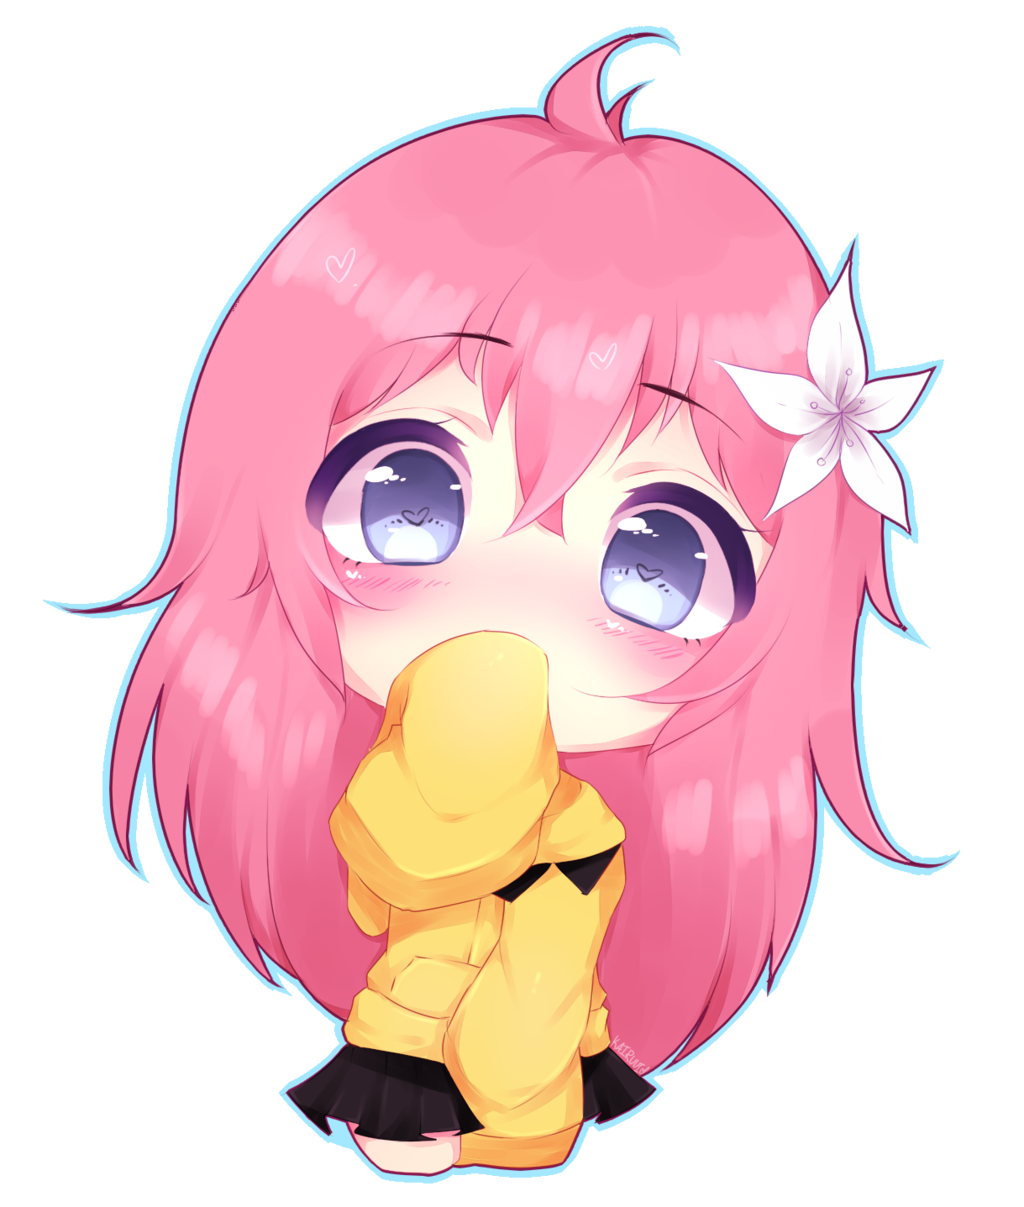 Lilypichu_by_pyonii-d9ajp39.png (1024×1207)